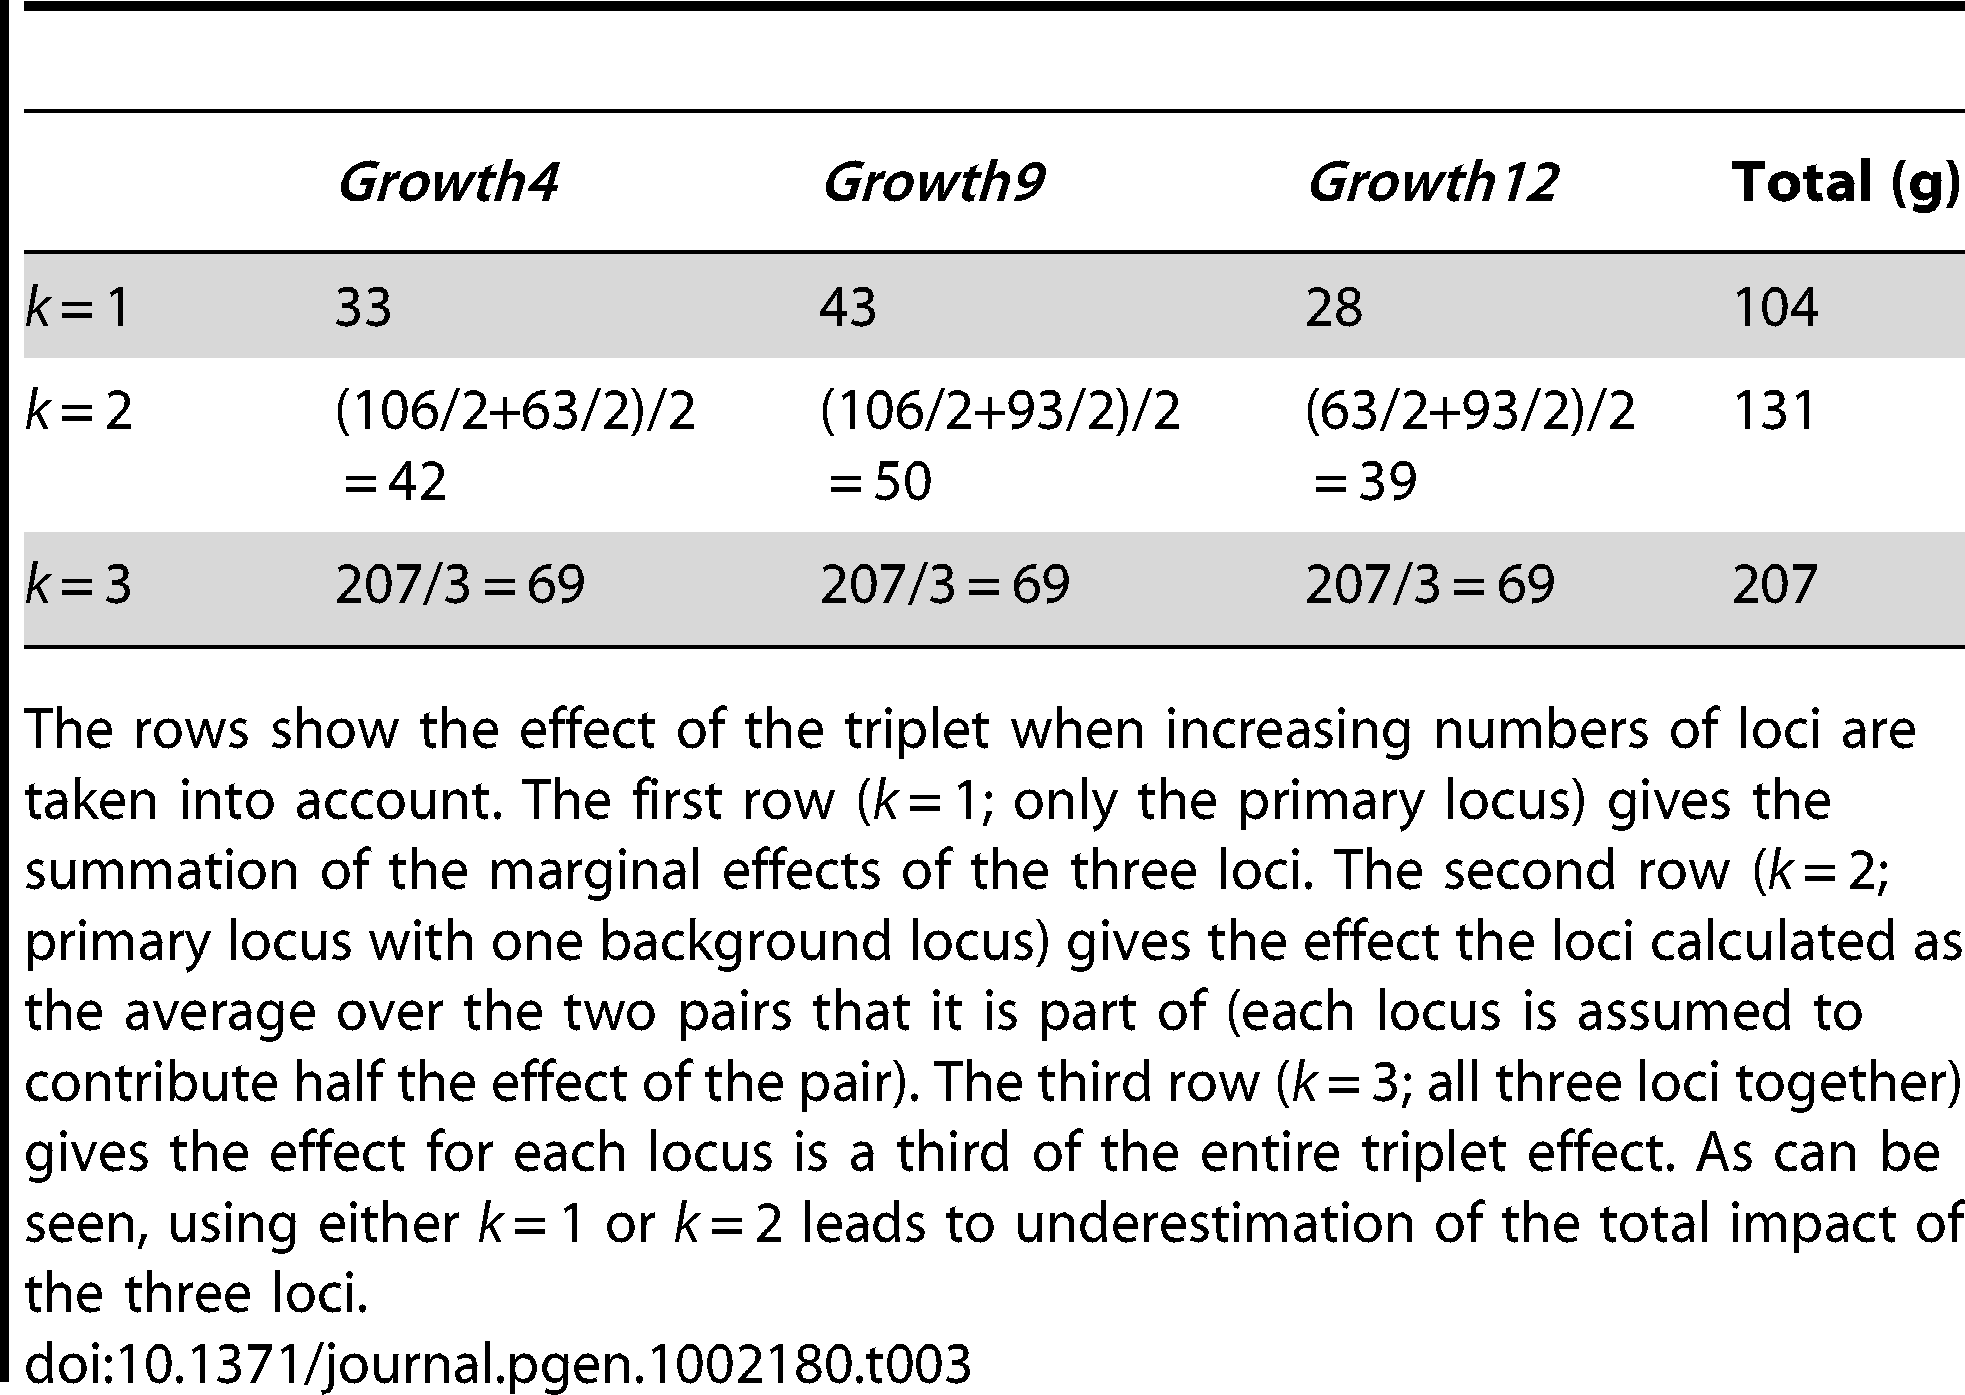 Differences in total effects of the three loci <i>Growth4</i>, <i>Growth9.1</i>, and <i>Growth 12</i> based on their context.